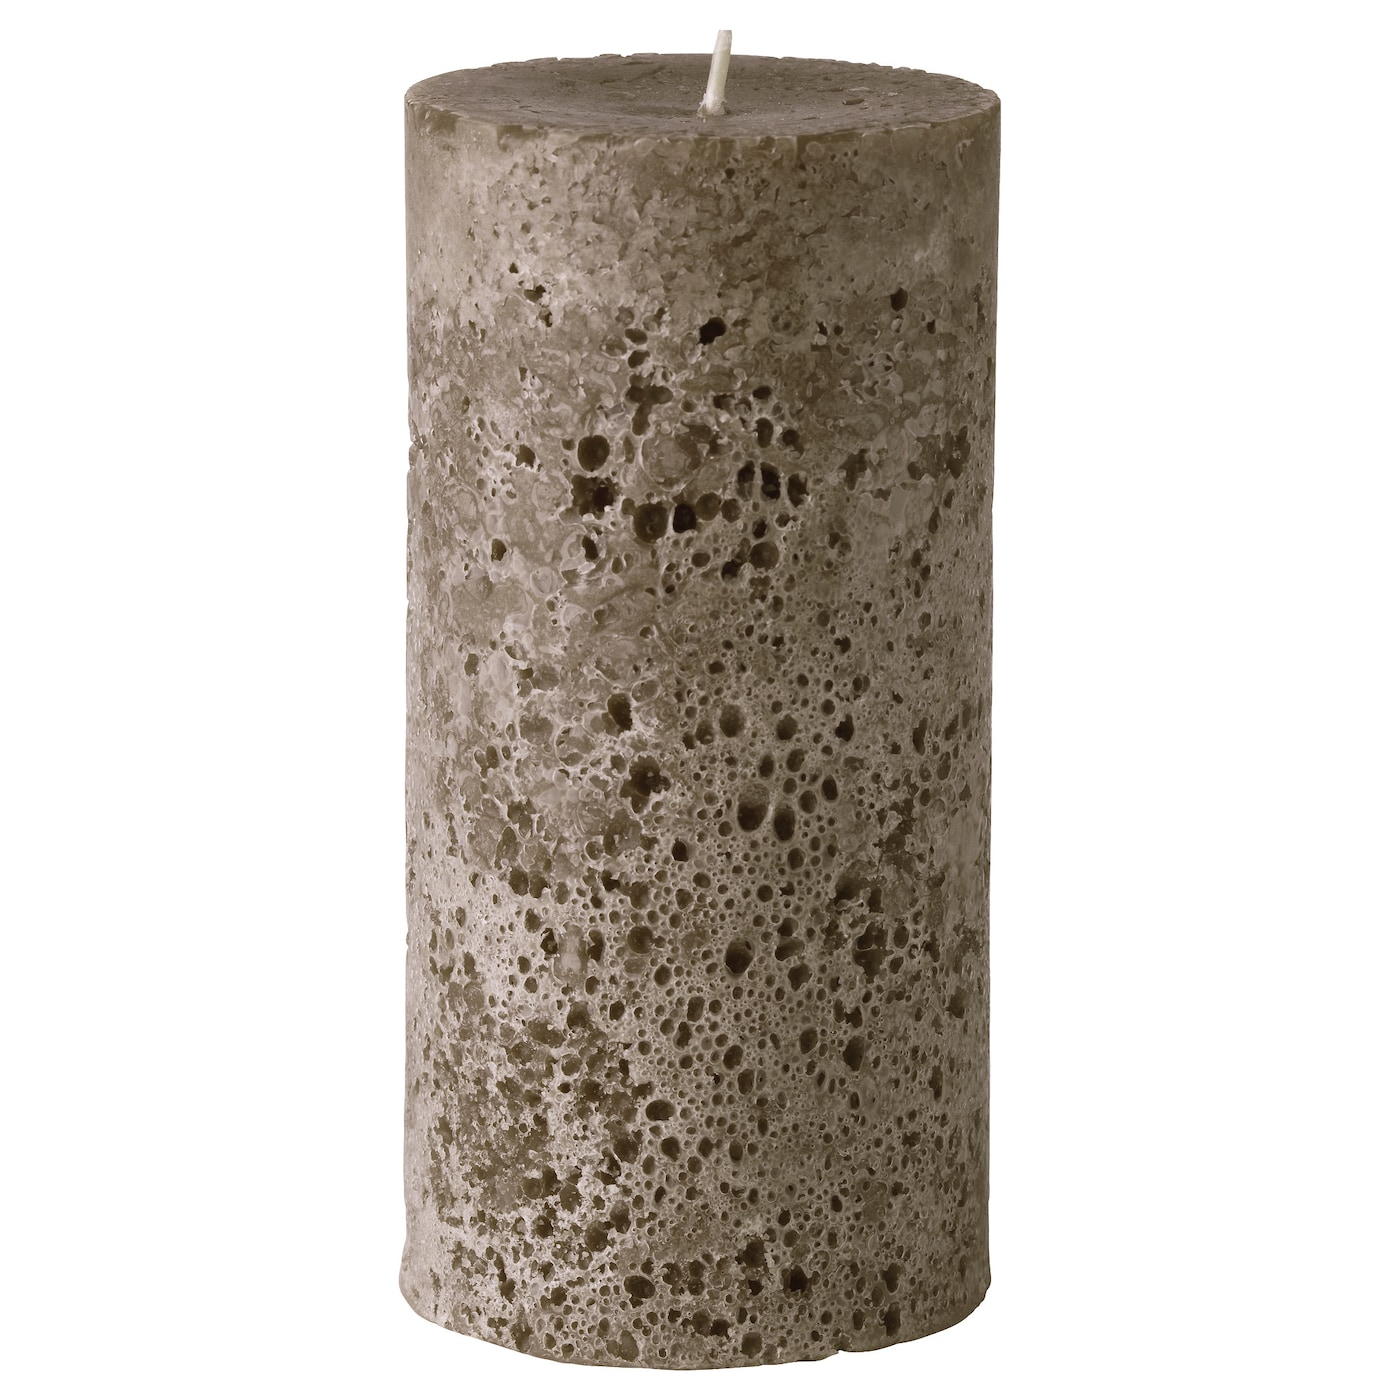 IKEA BJUDANDE unscented block candle